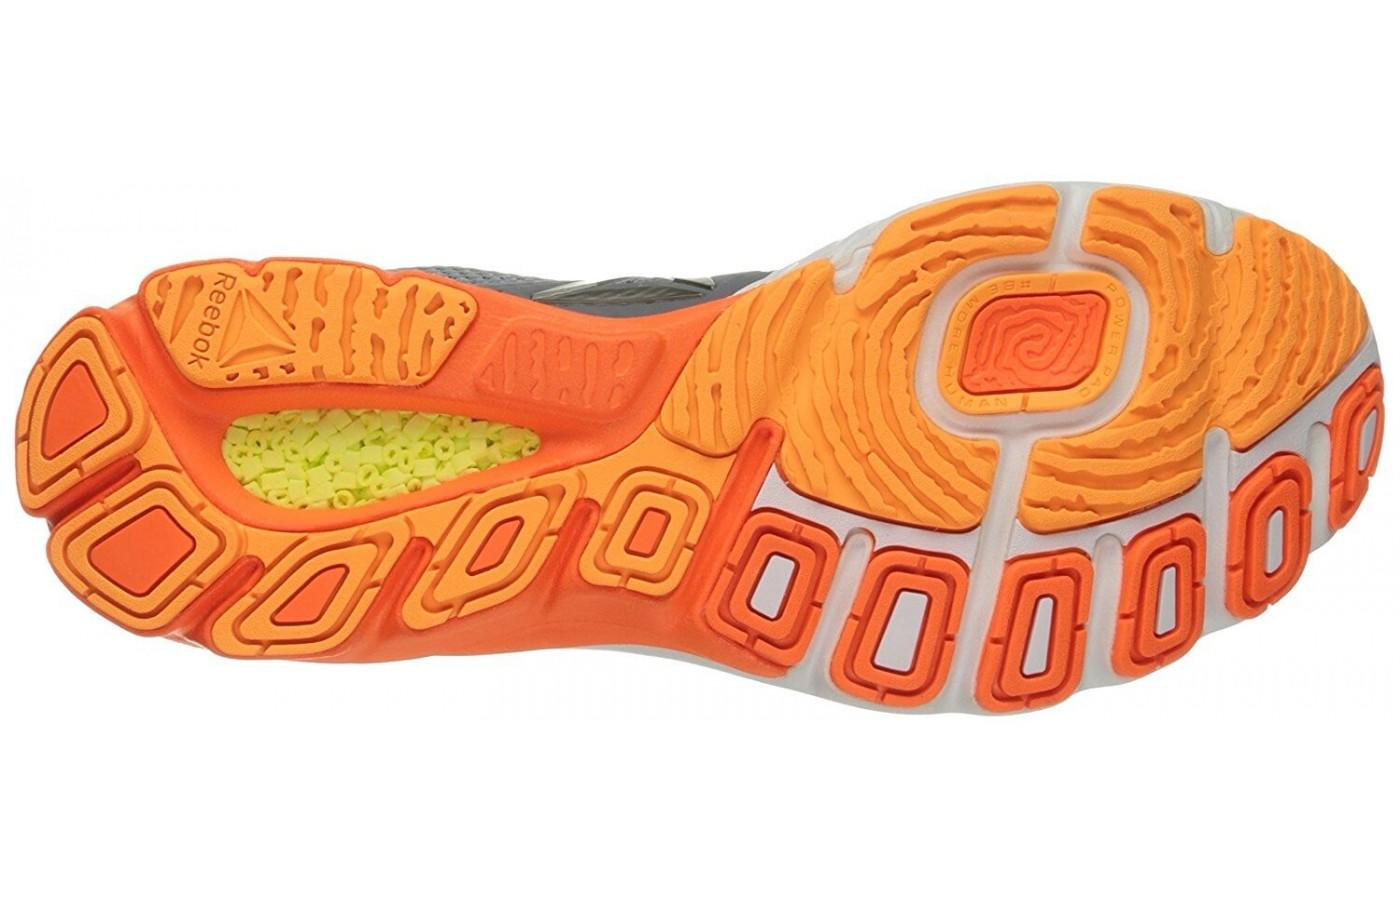 the unique outsole of the Reebok Harmony Road is durable and offers a great amount of traction